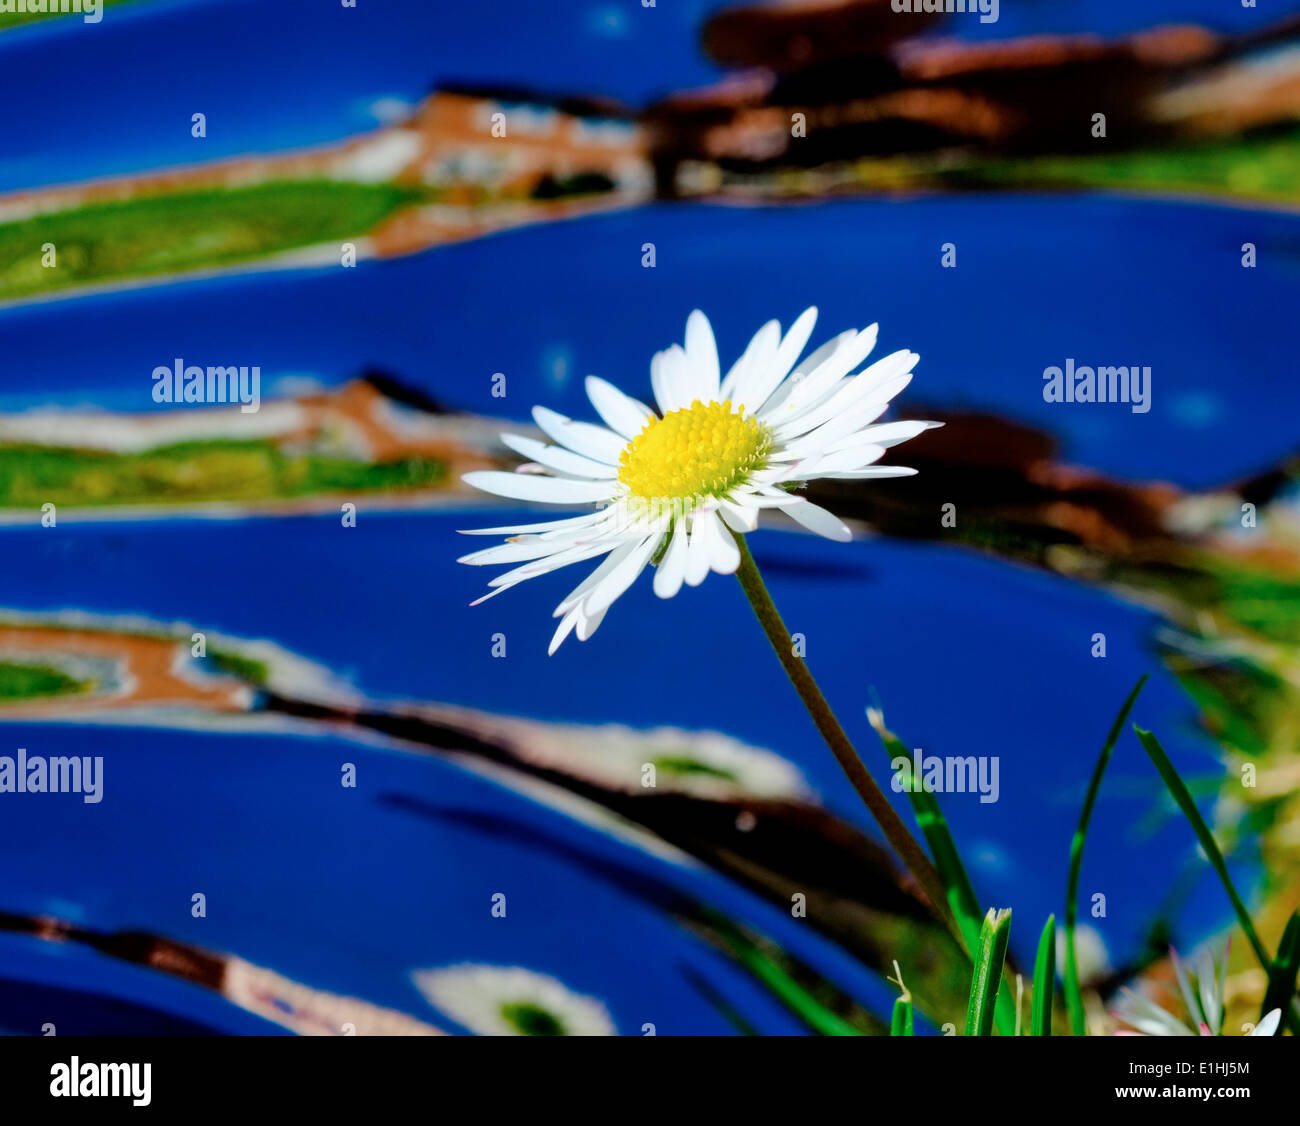 A daisy in a garden with a mirrored reflective warped background Stock Photo